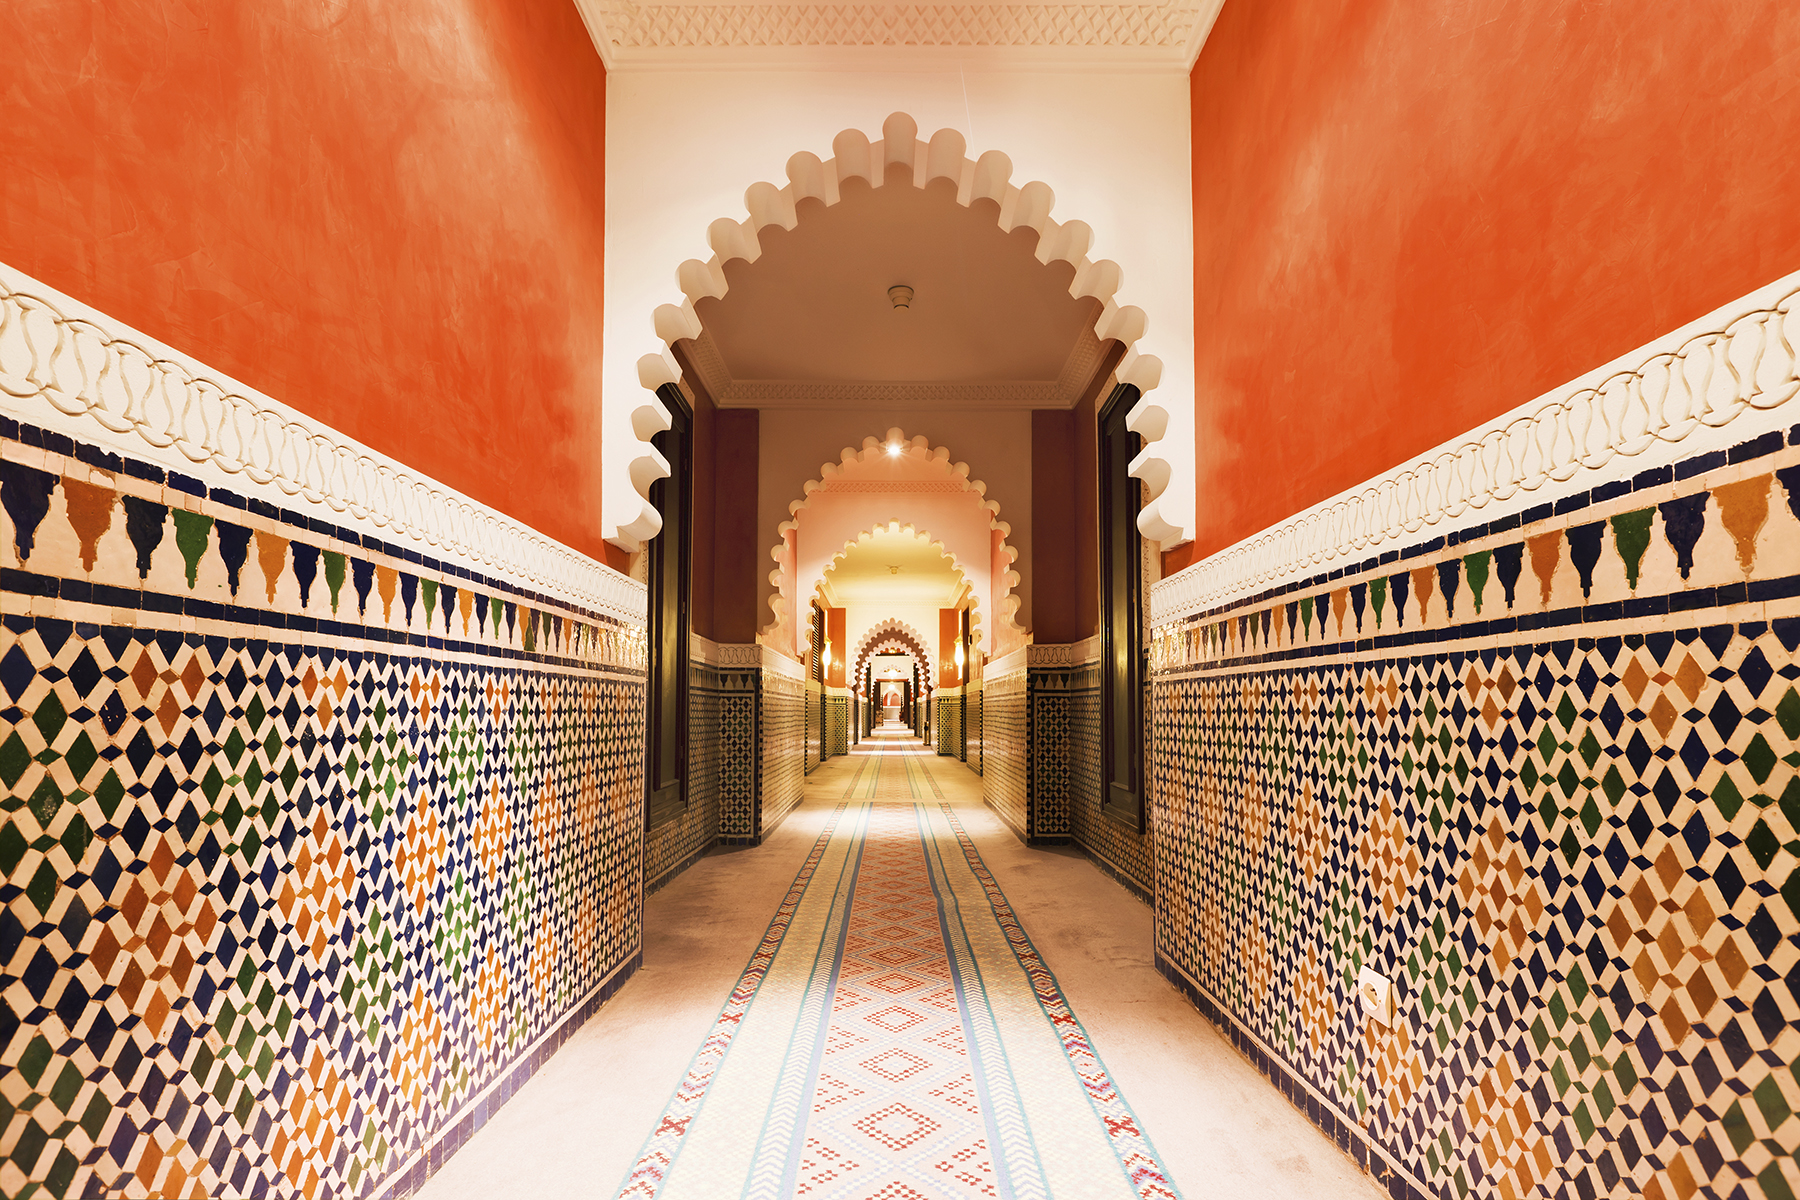 Orange-painted Moroccan archway with ornamental tiles